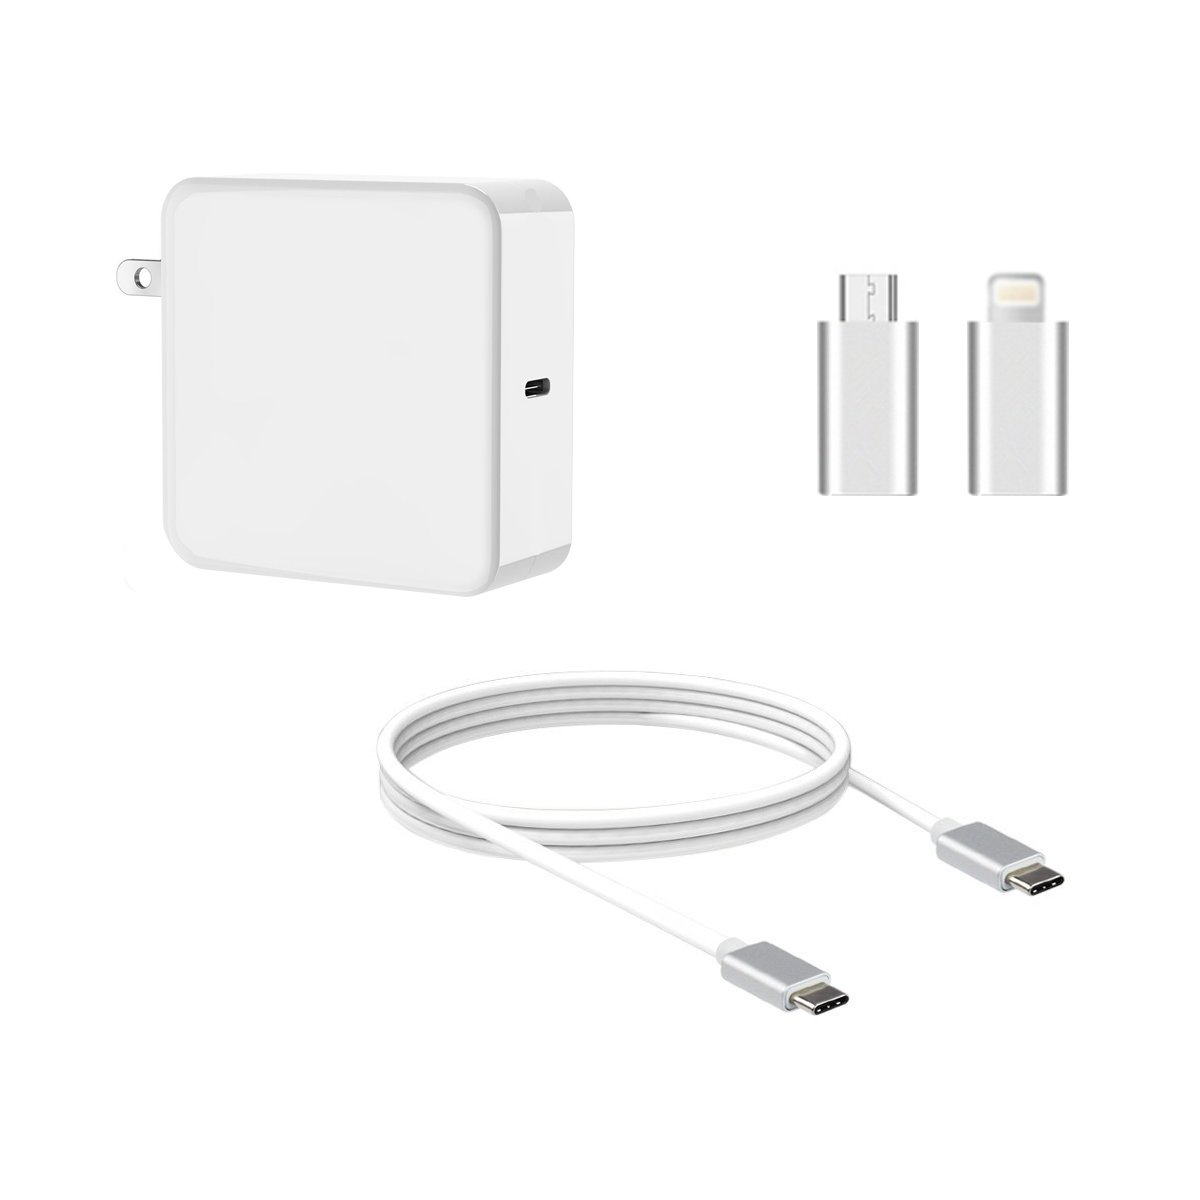 65W Type-C AC Charger Power Supply Adapter Cord For Apple Macbook/Dell/Xiaomi air/Huawei Matebook/HP Spectre/Thinkpad Nintendo Switch, Type C laptops, Type C Smart Phones (white)